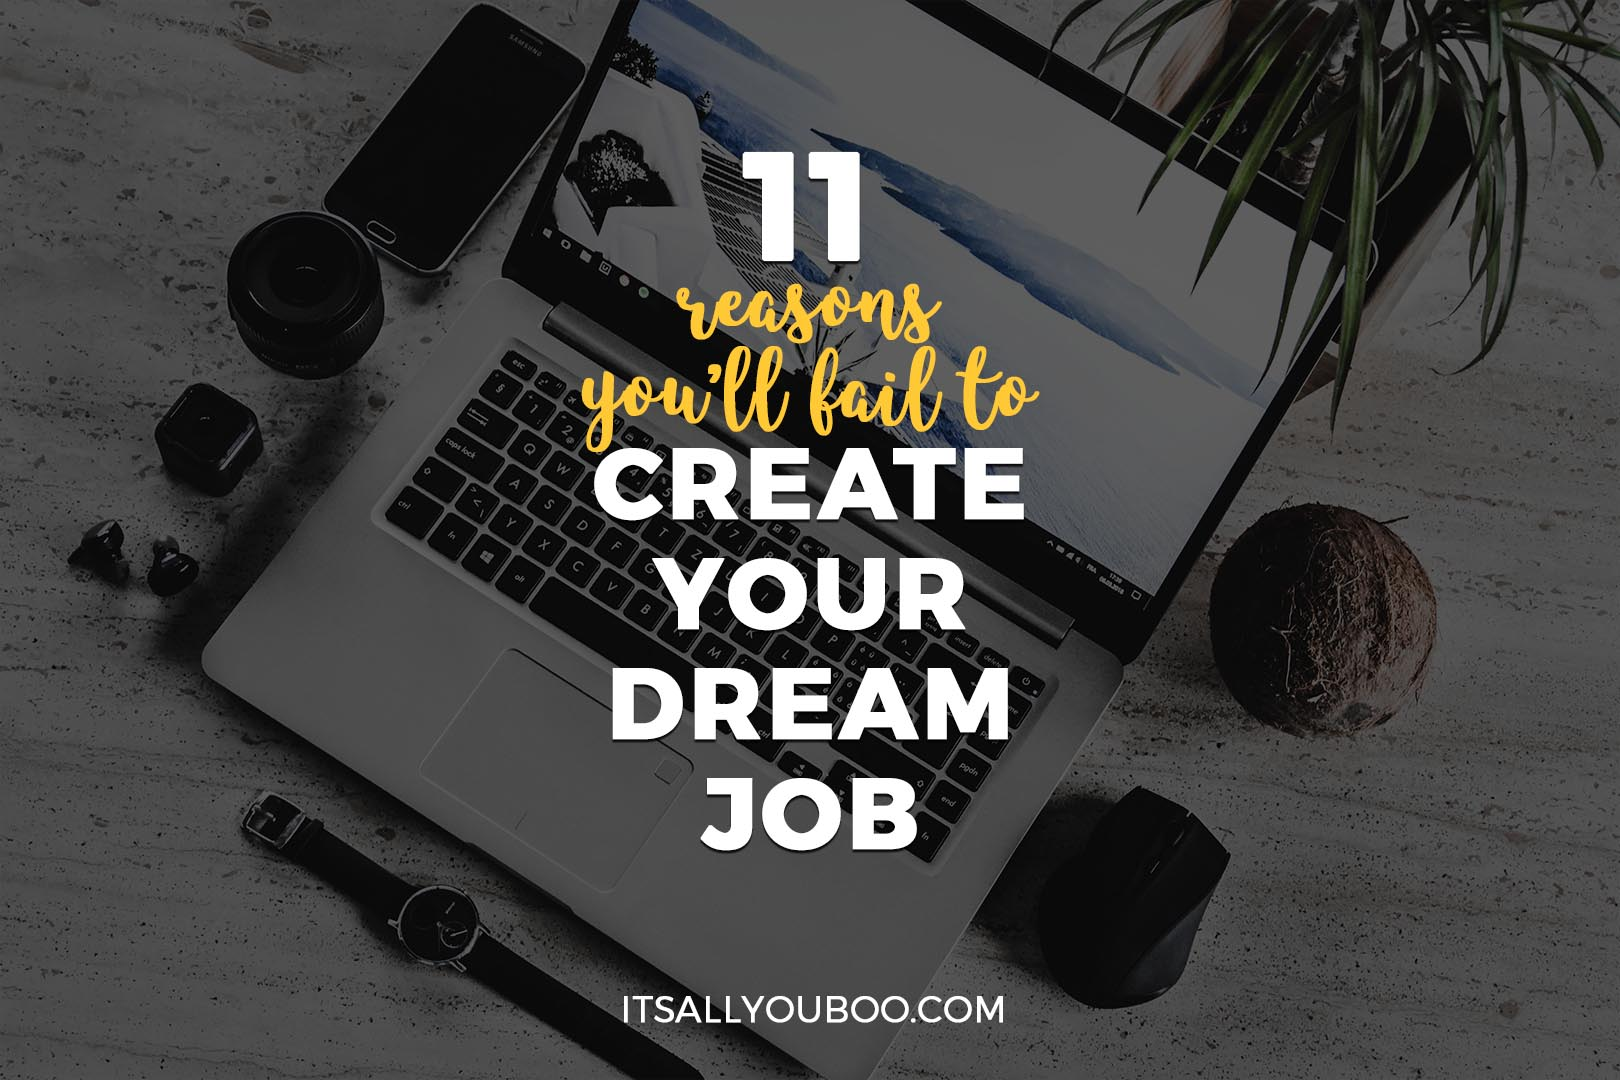 11 Reasons You'll Fail to Create Your Dream Job